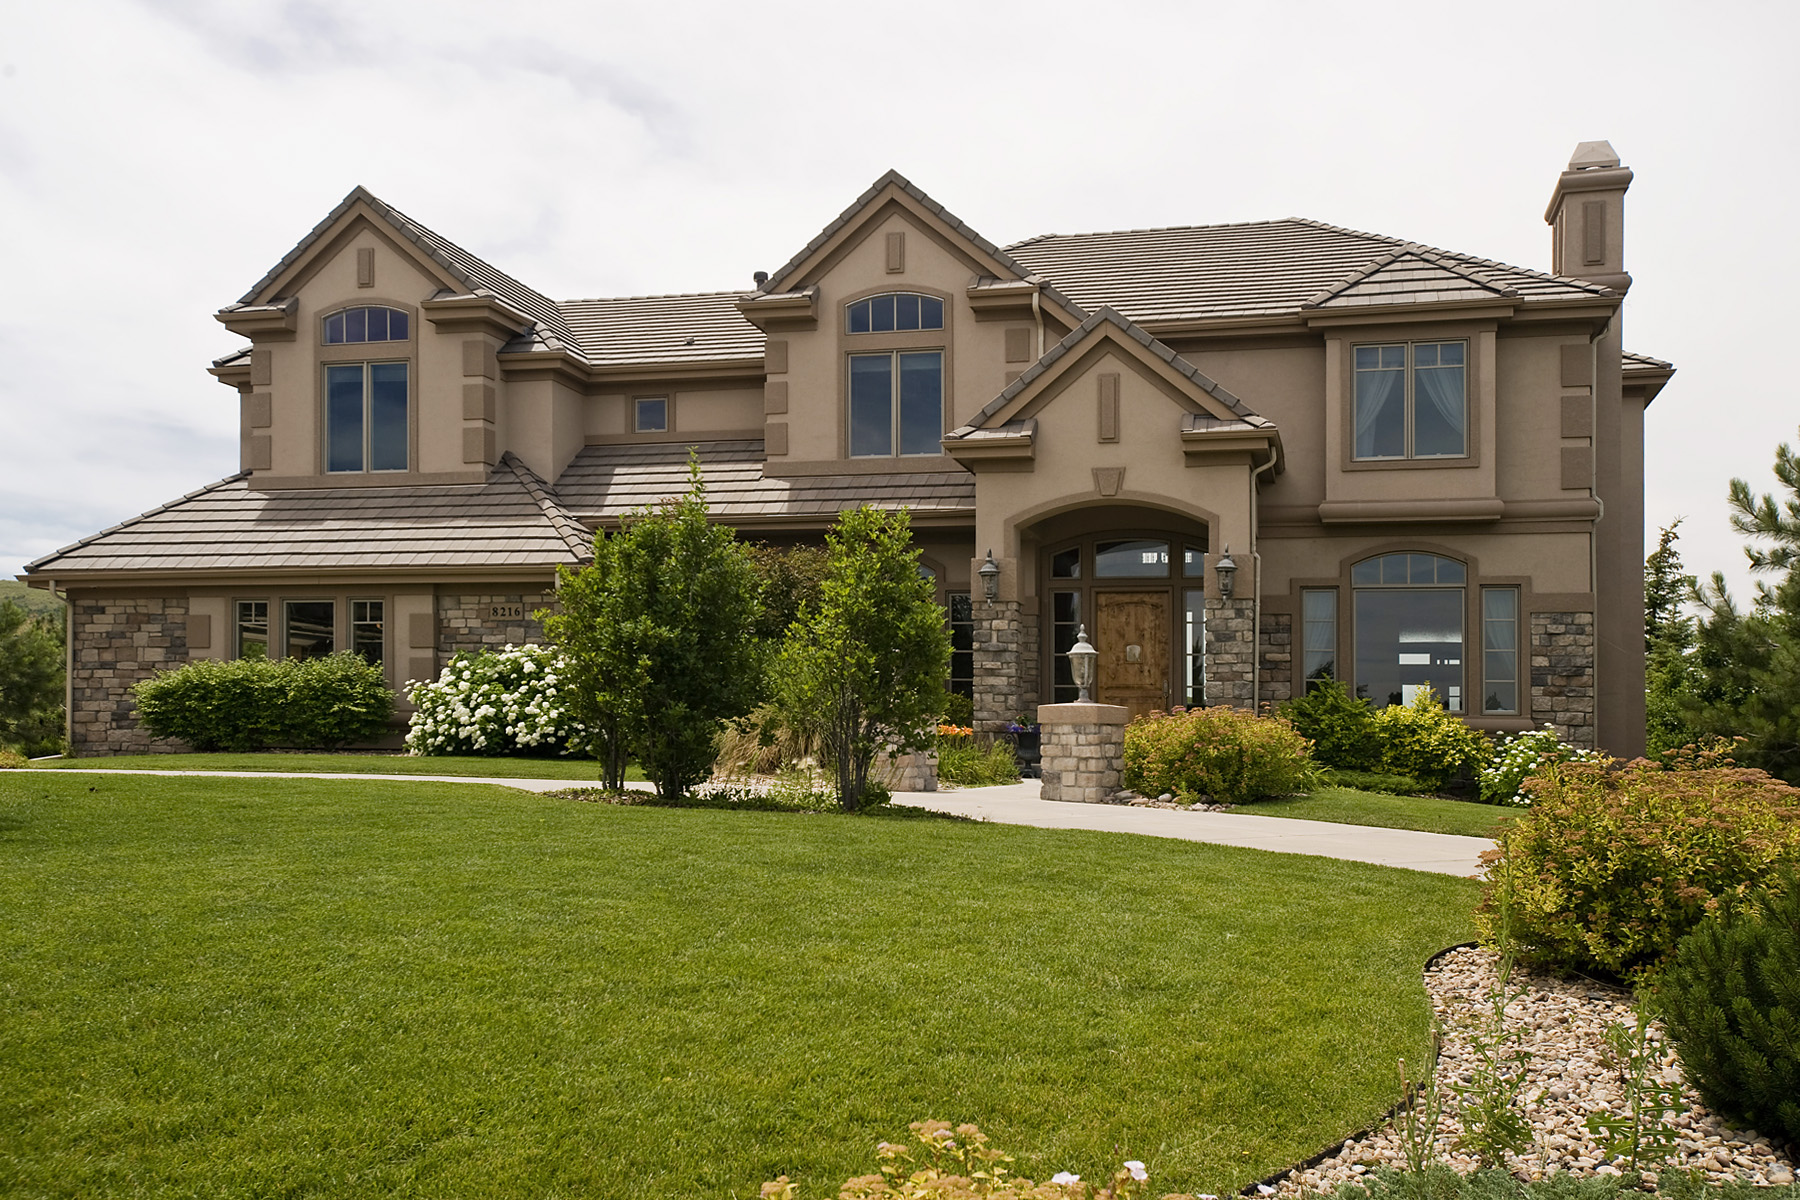 Single Family Home for Active at Prestigious Gated Golf Community 8216 Sawgrass Drive Lone Tree, Colorado 80124 United States